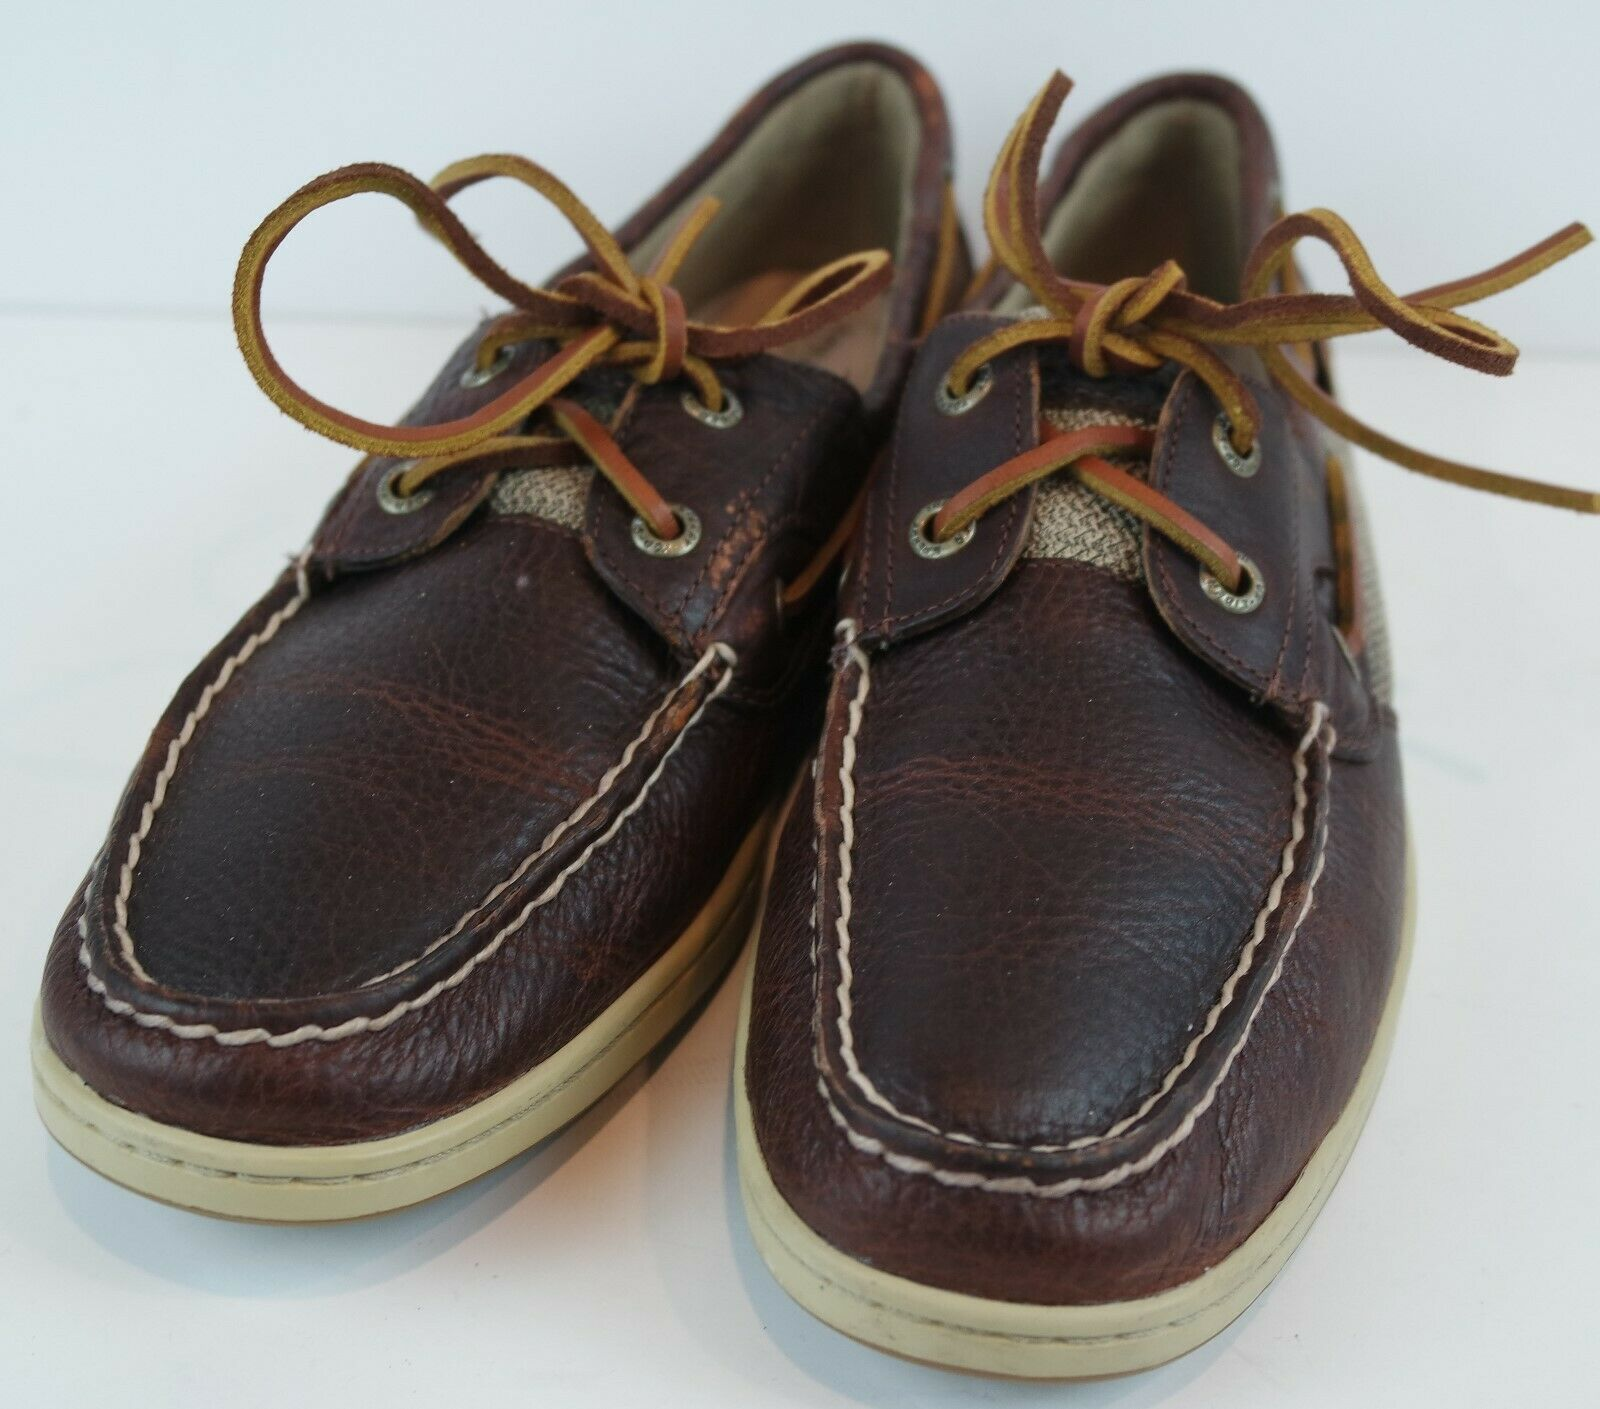 Sperry Top Sider Women's Koifish Boat Shoes Brown MSRP Size 8.5 M